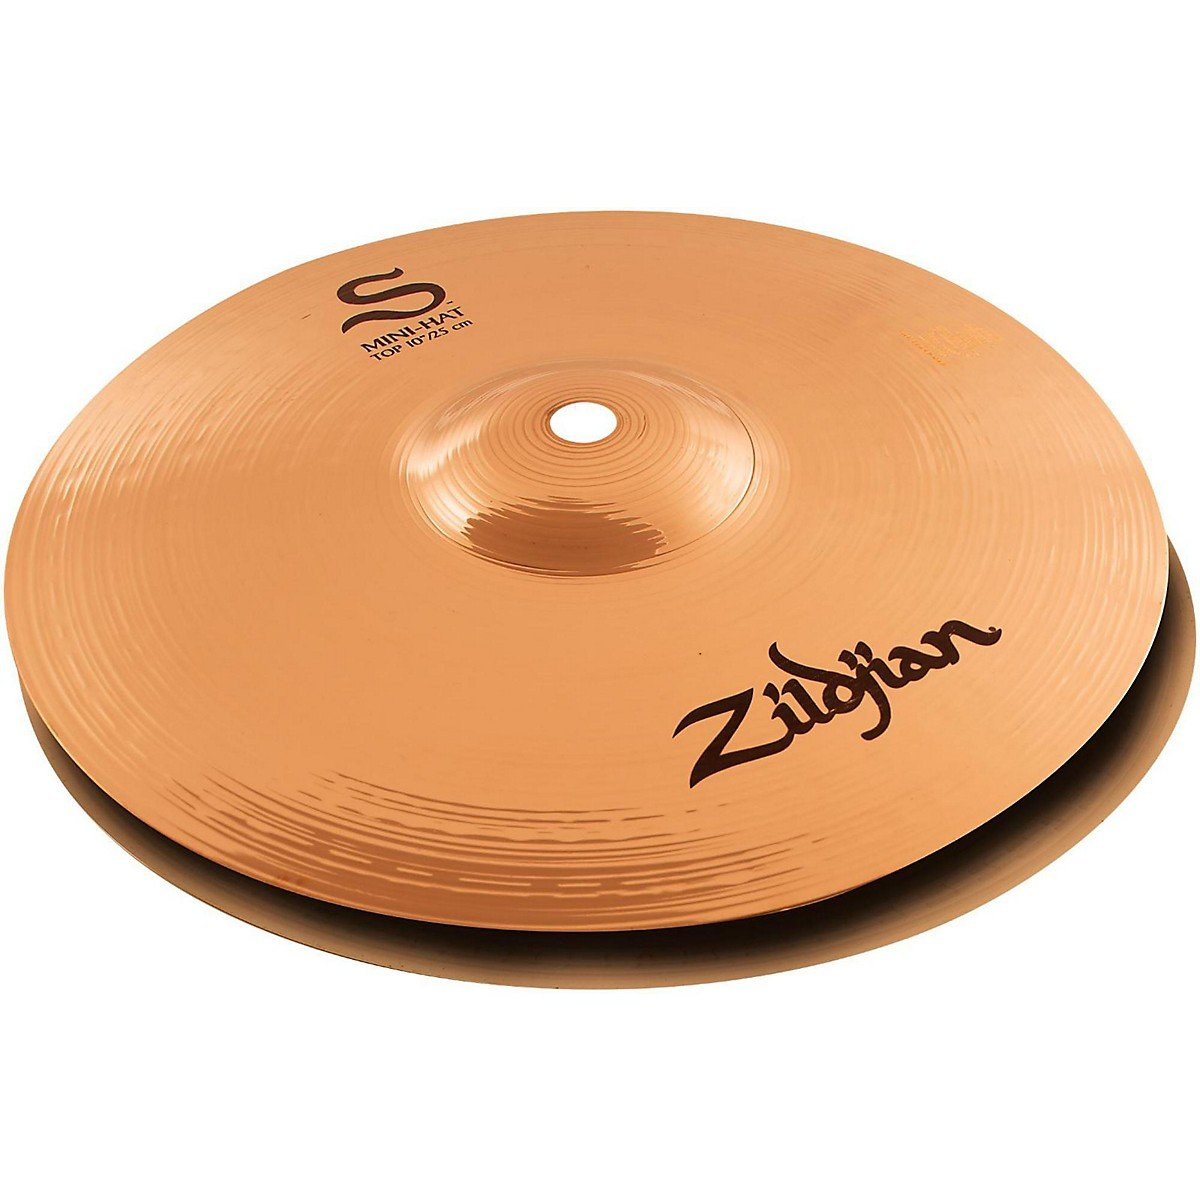 9d90429fc91 Get Quotations · Zildjian 10